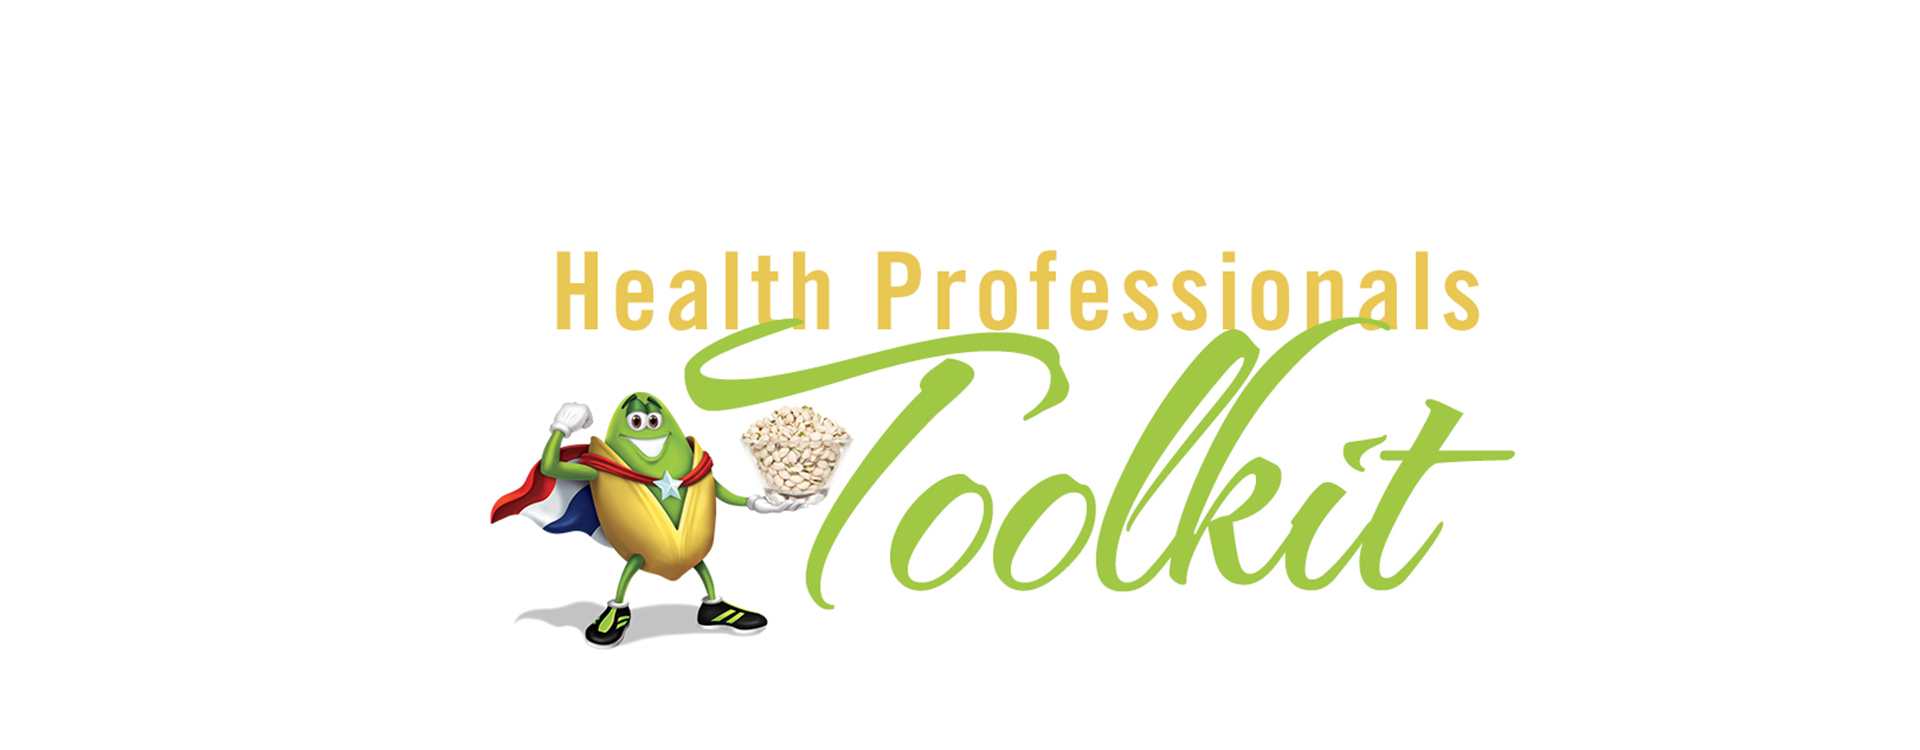 Health Professional Toolkit